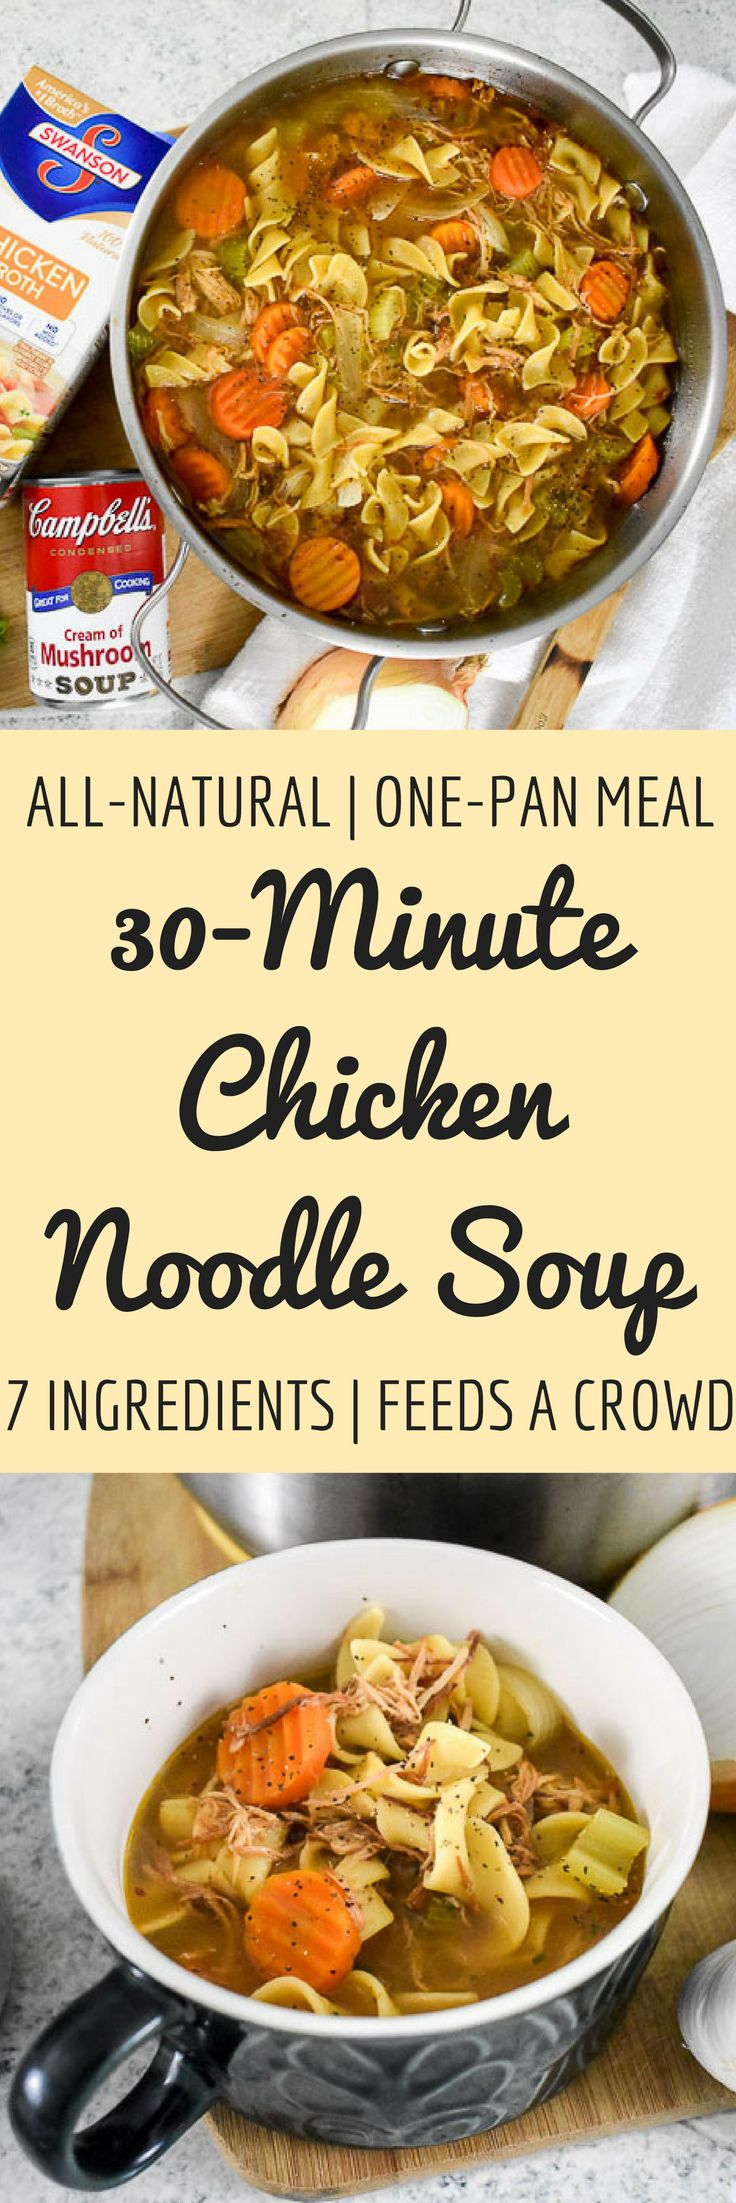 This 30-minute chicken noodle soup is made with all-natural ingredients in one pot and feeds a crowd! Perfect for cool weather, cozy gathering, or combating colds. Recipe by Dash of Jazz via @dashofjazzblog #Homemade4theHolidays #ad